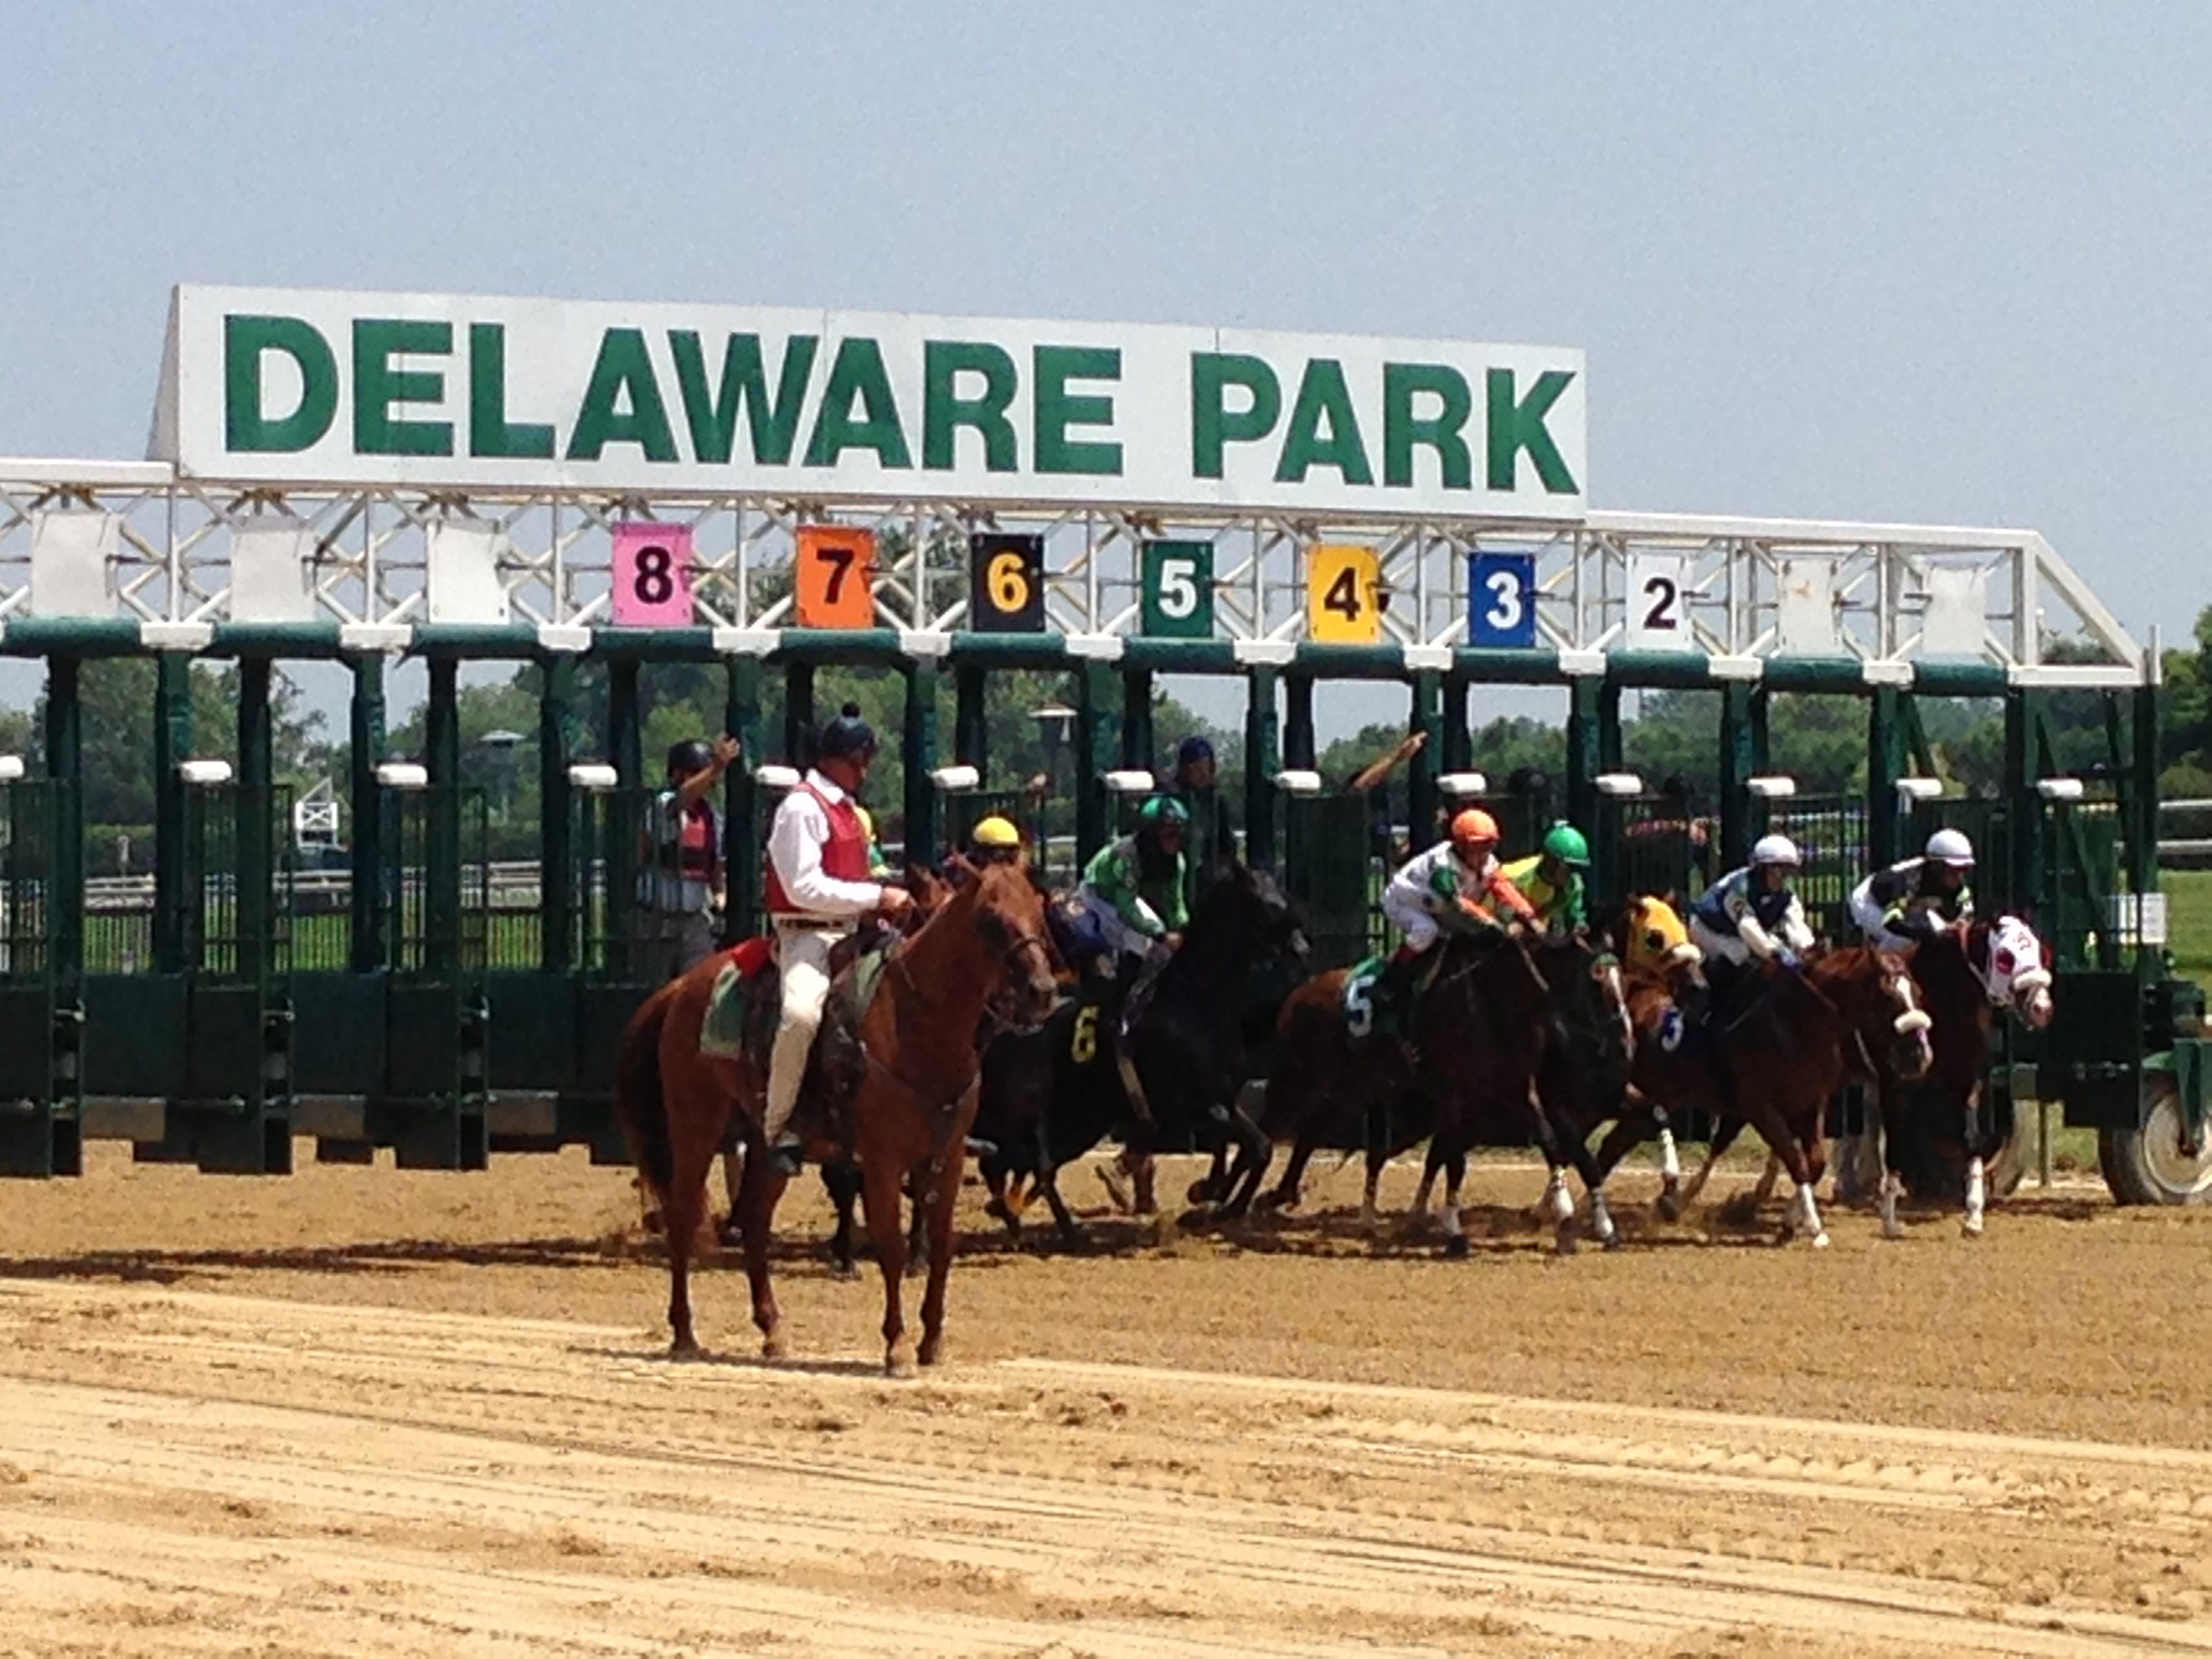 Delaware online gambling has strong August